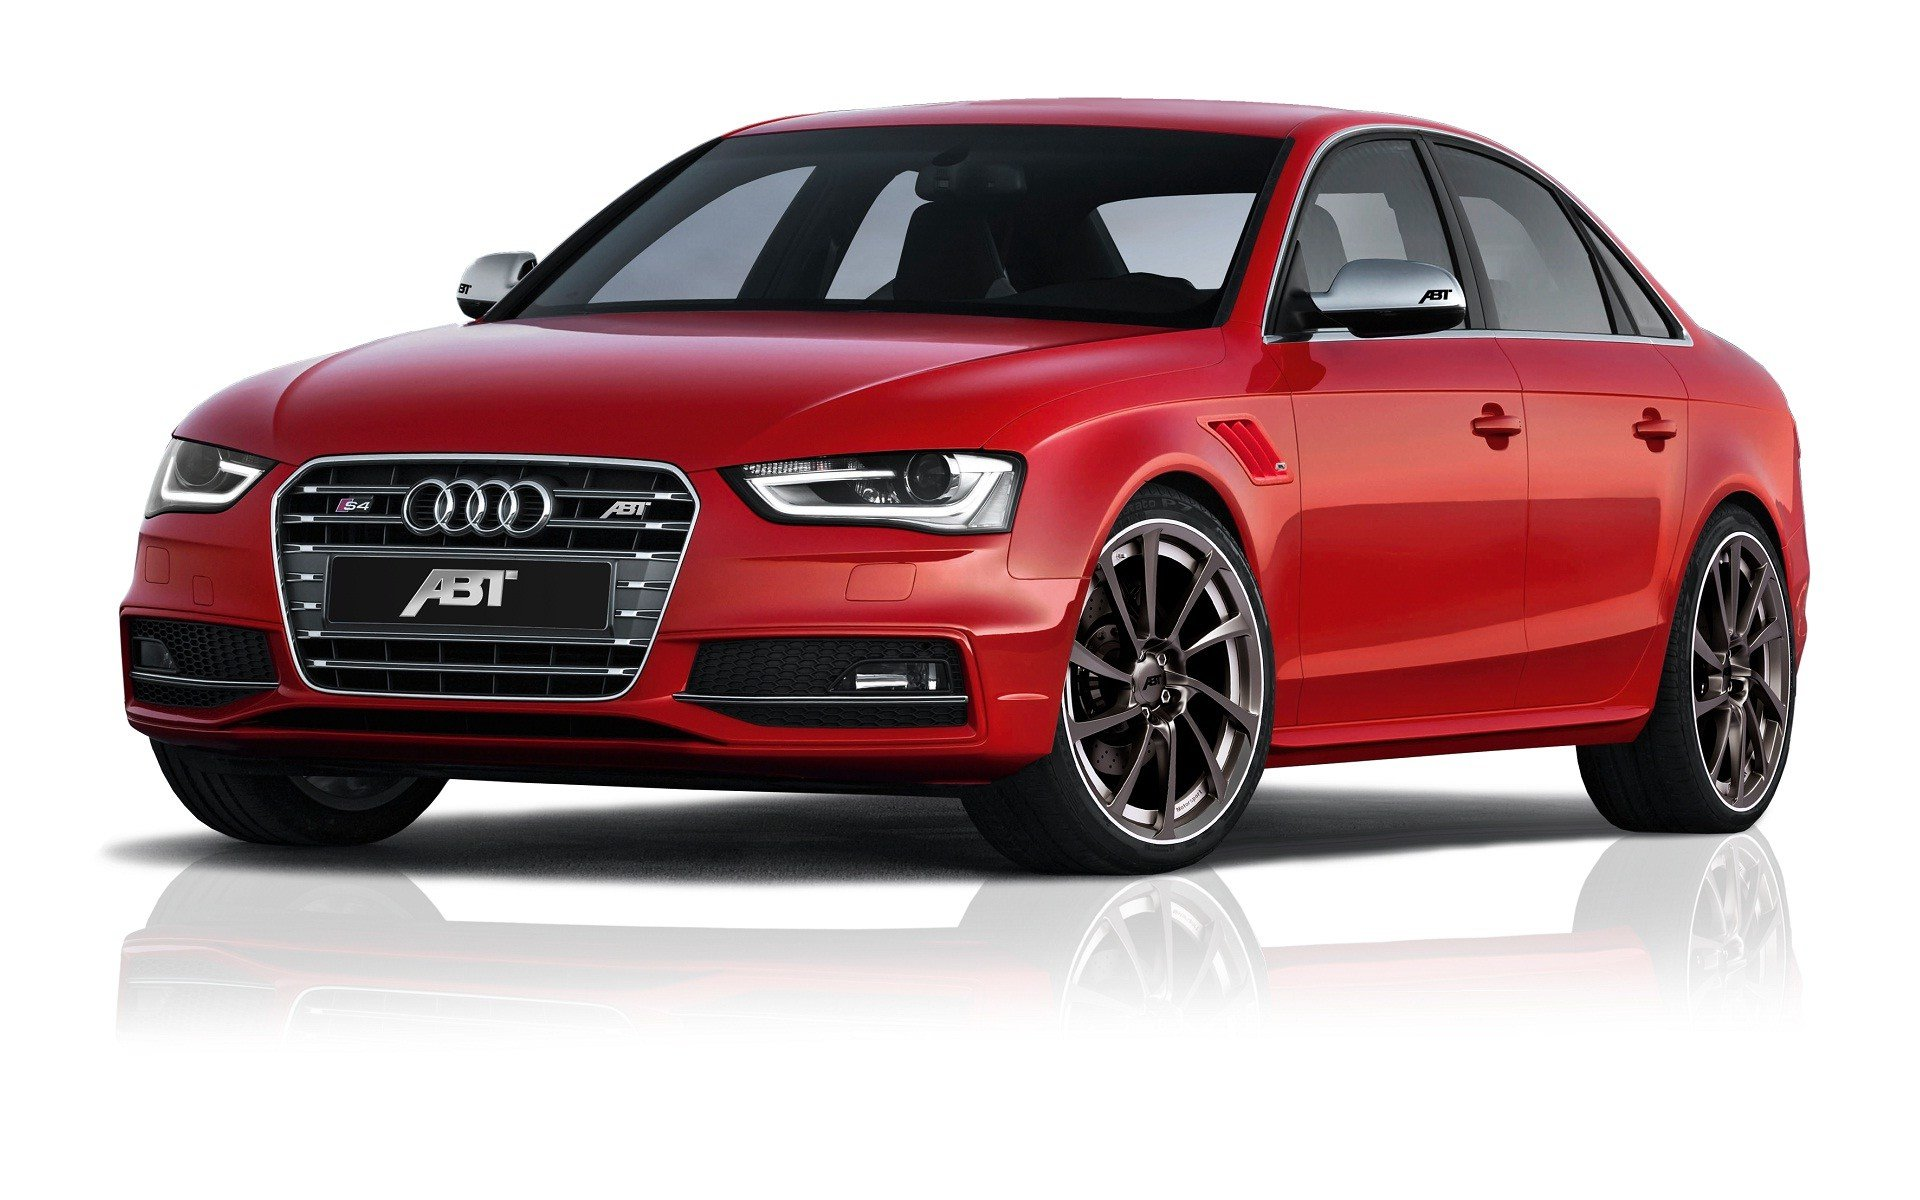 Latest Audi Car Red Color New Exclusive Look Hd Wallpapers Rocks Free Download